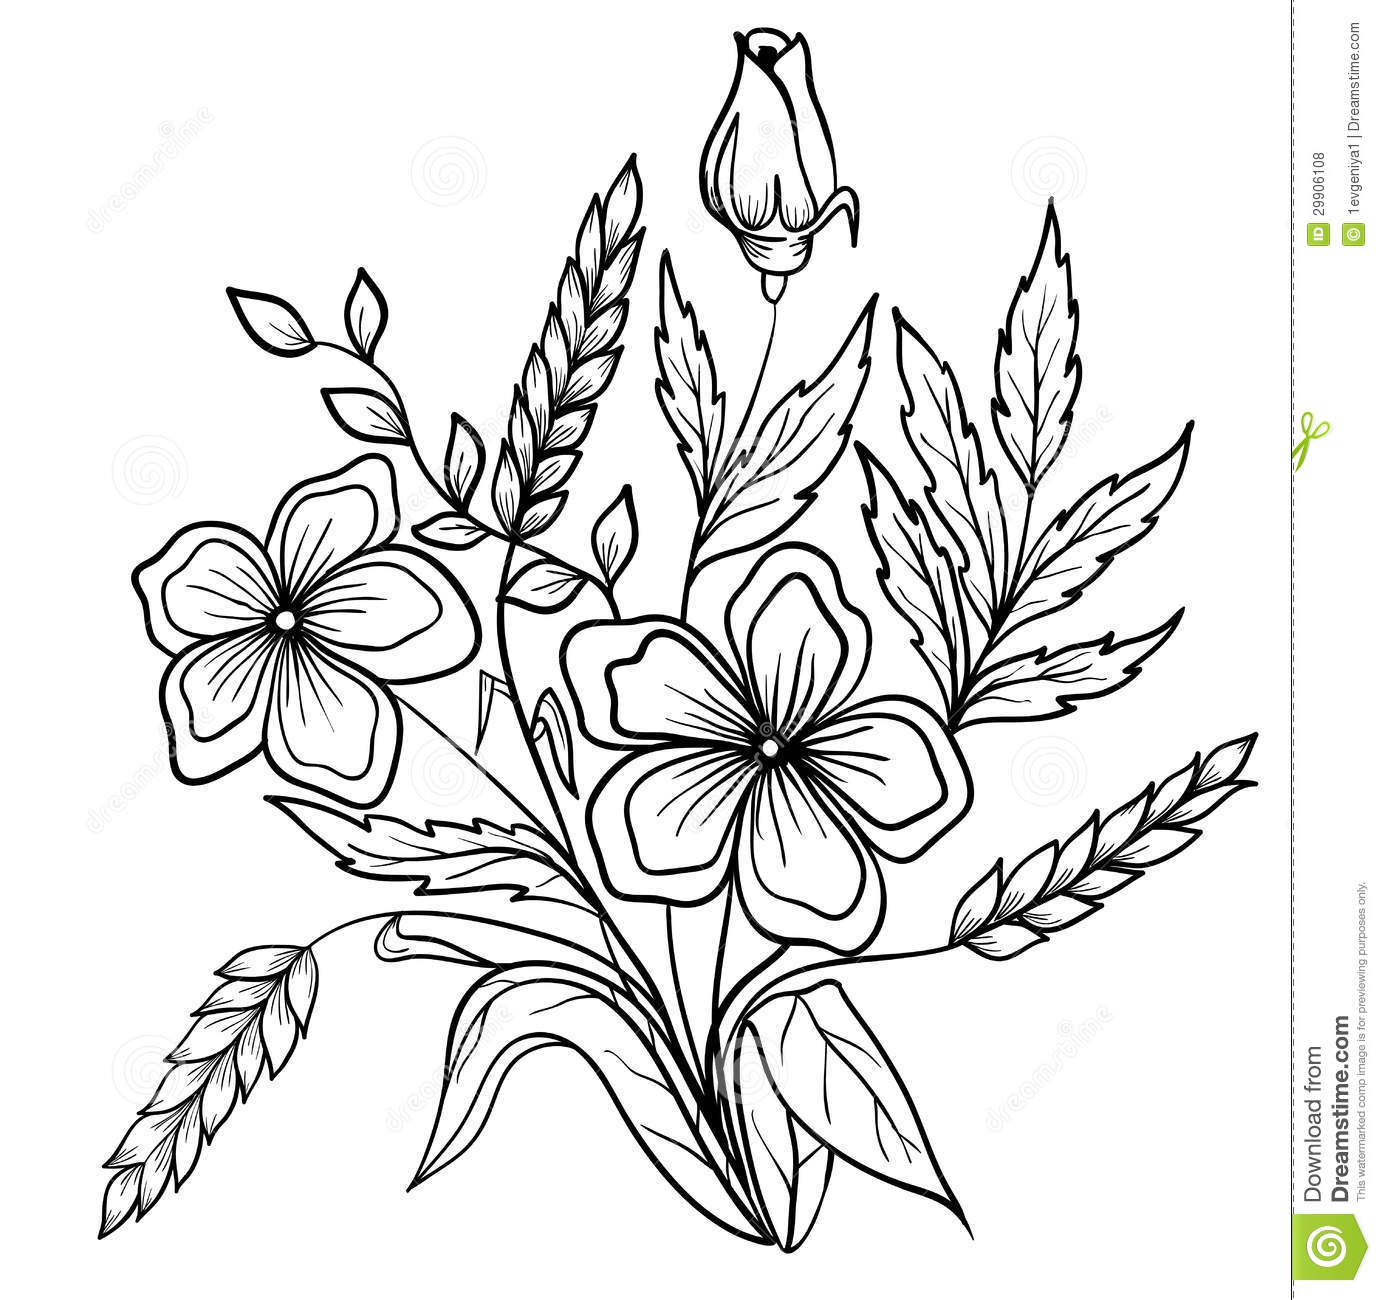 Arrangement of flowers black and white outline drawing stock vector arrangement of flowers black and white outline drawing mightylinksfo